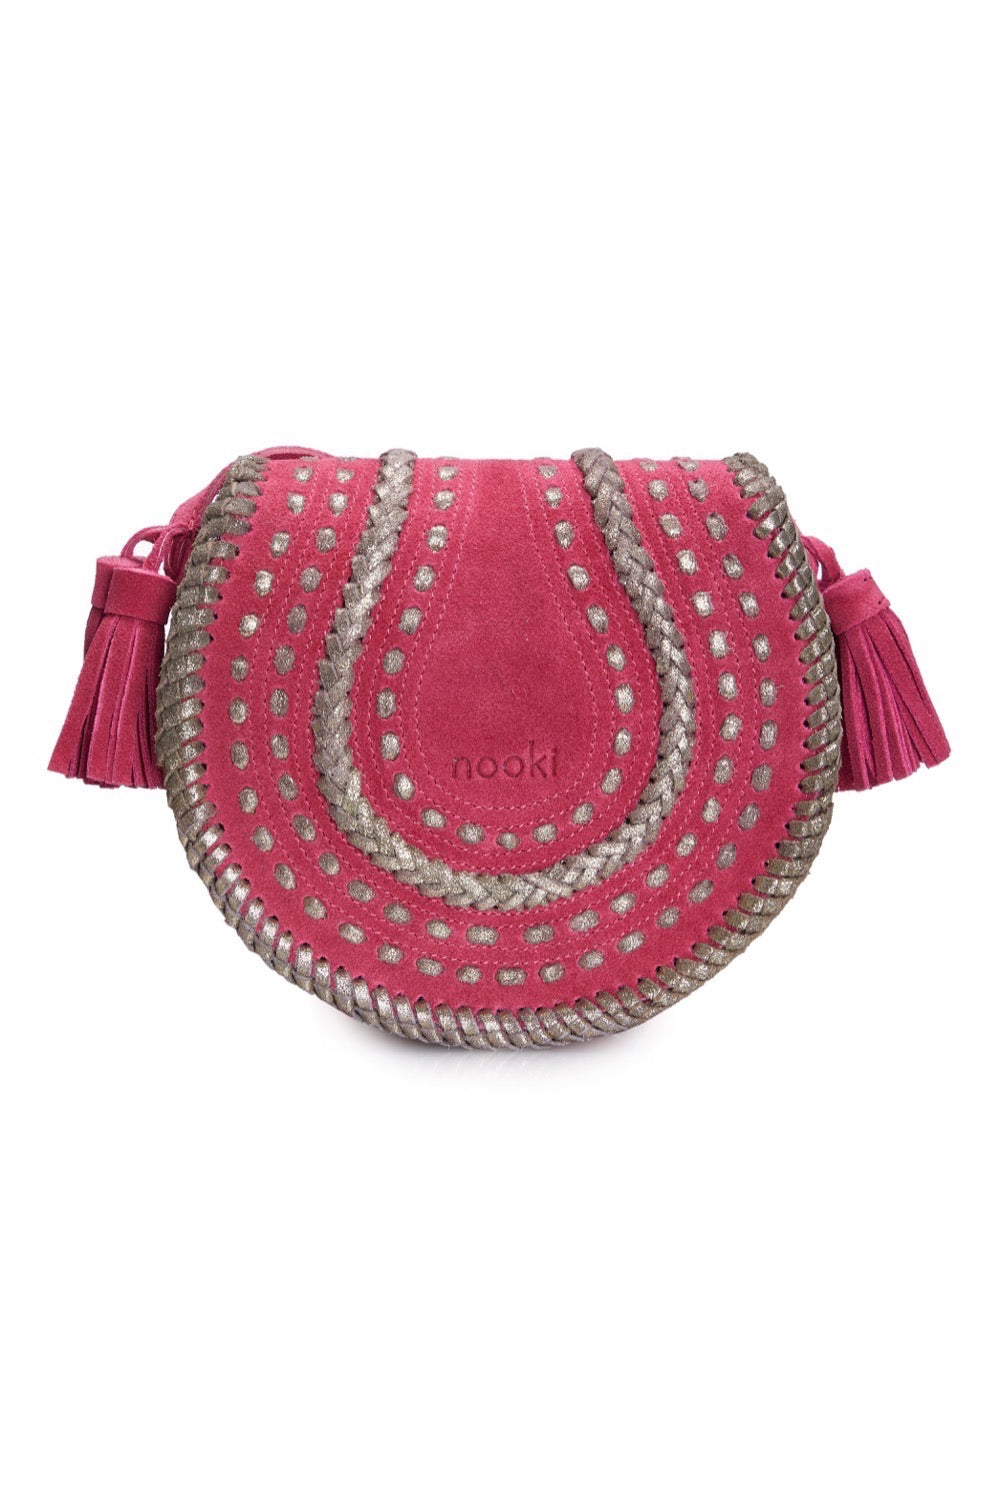 D'Souza Cross body  - Pink Suede